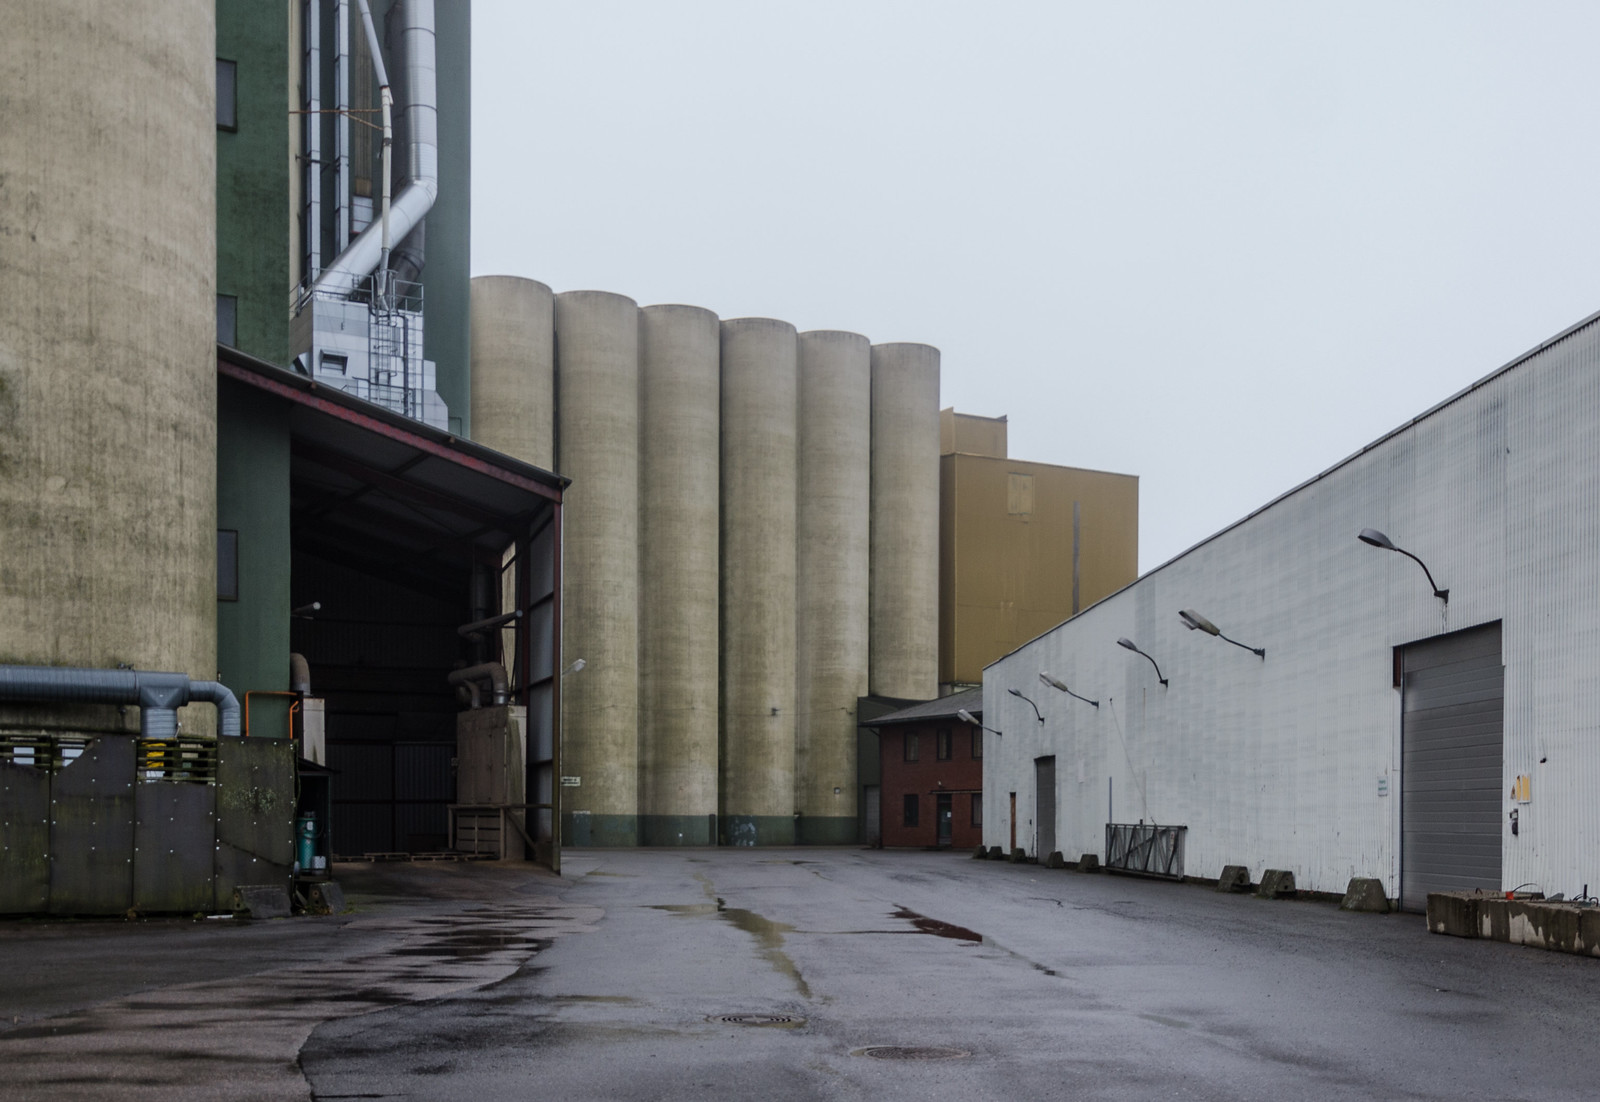 Silos and buildings | by AstridWestvang